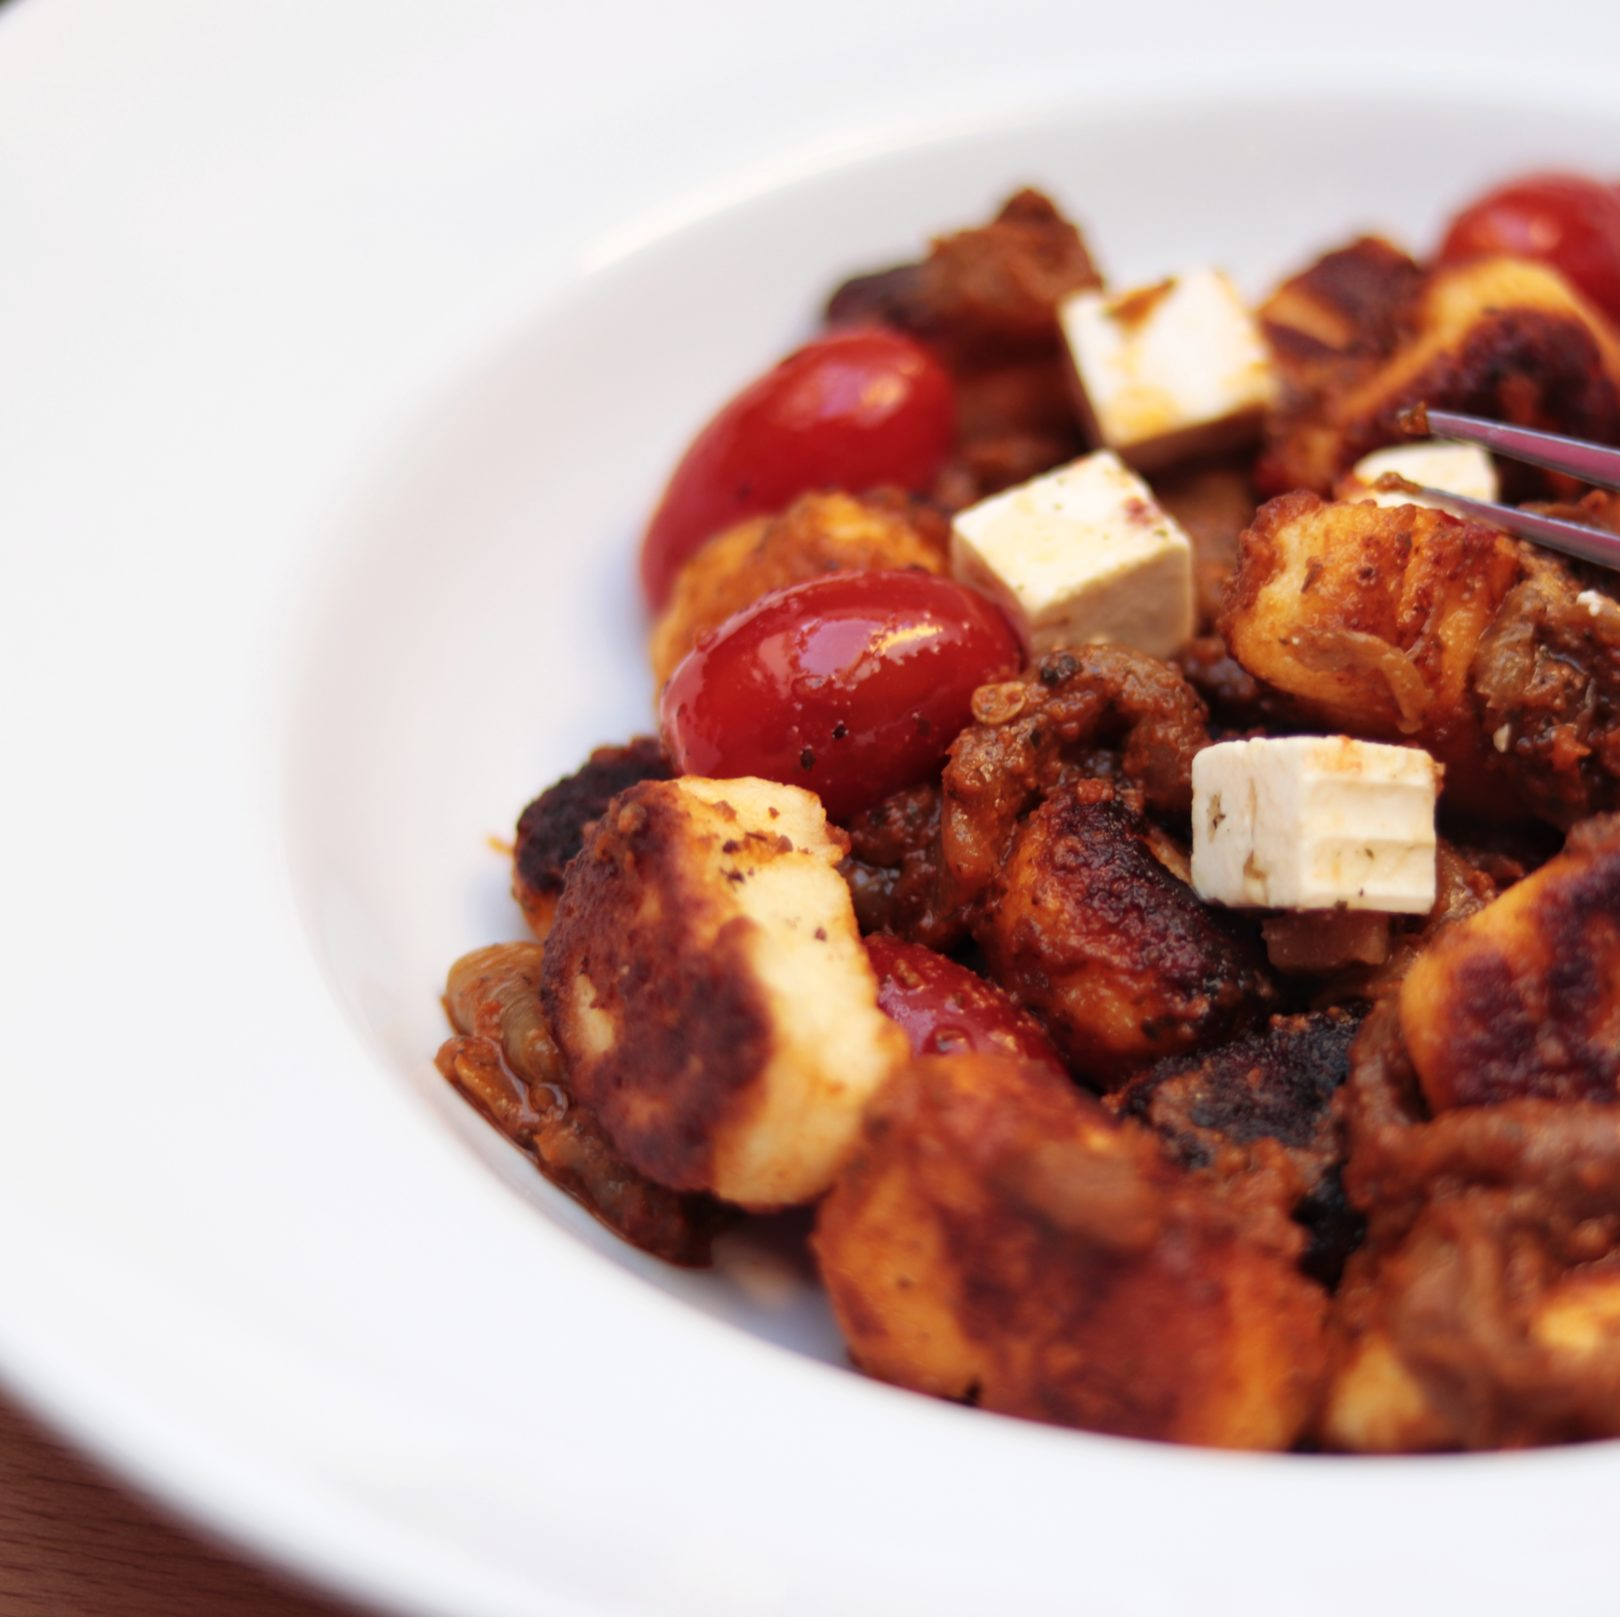 Low-Carb Gnocchi with Red Pesto Sauce